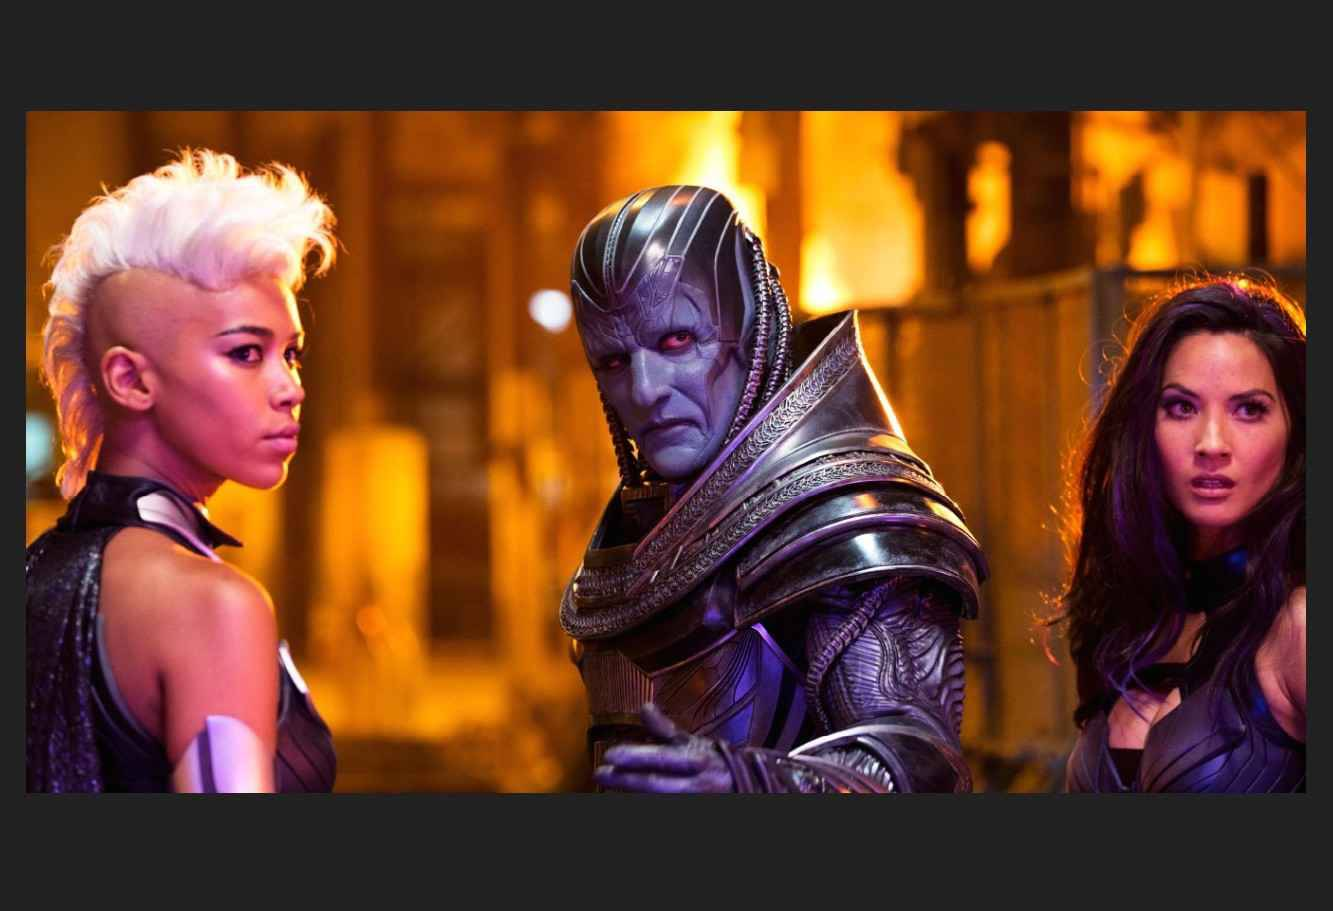 x men apocalypse et son invincible mutant se d voilent dans une bande annonce all chante. Black Bedroom Furniture Sets. Home Design Ideas